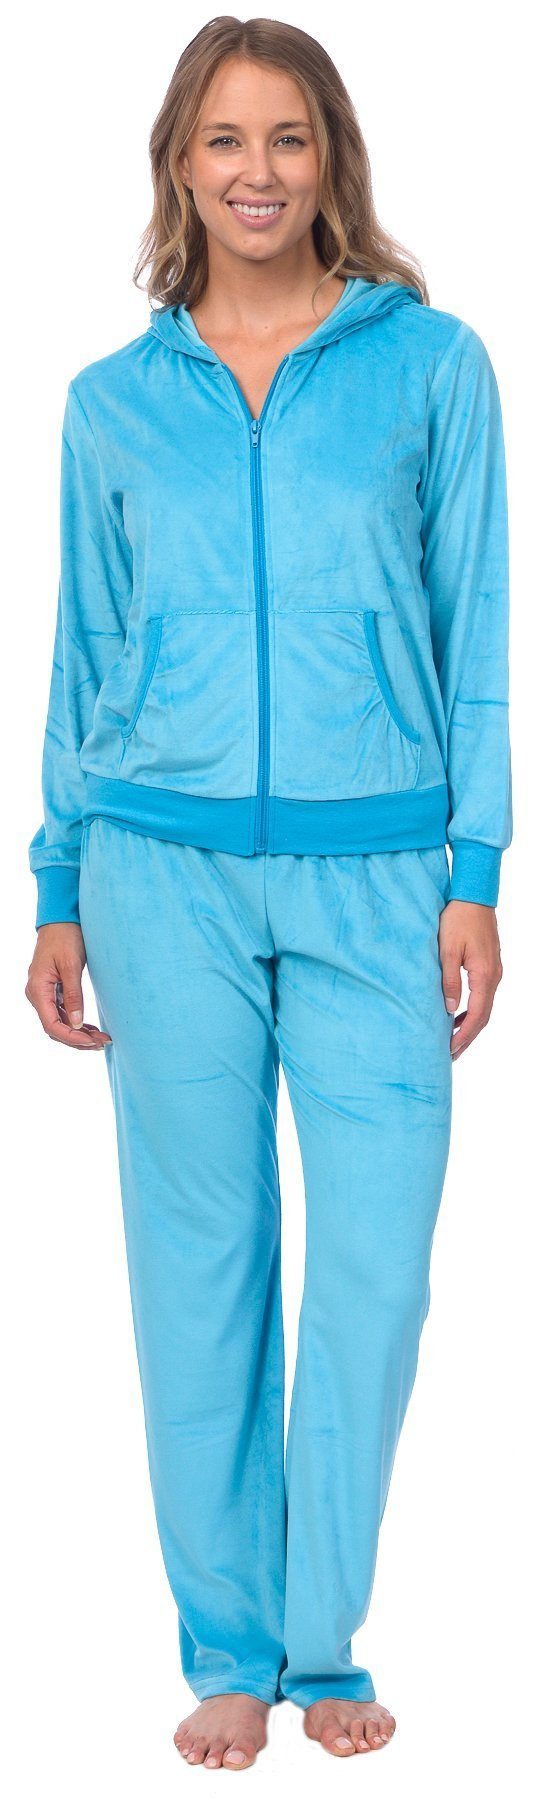 Pink Lady Womens Soft Velour Zip Hoodie and Bottoms Lounge Tracksuit (Cyan Blue, M)